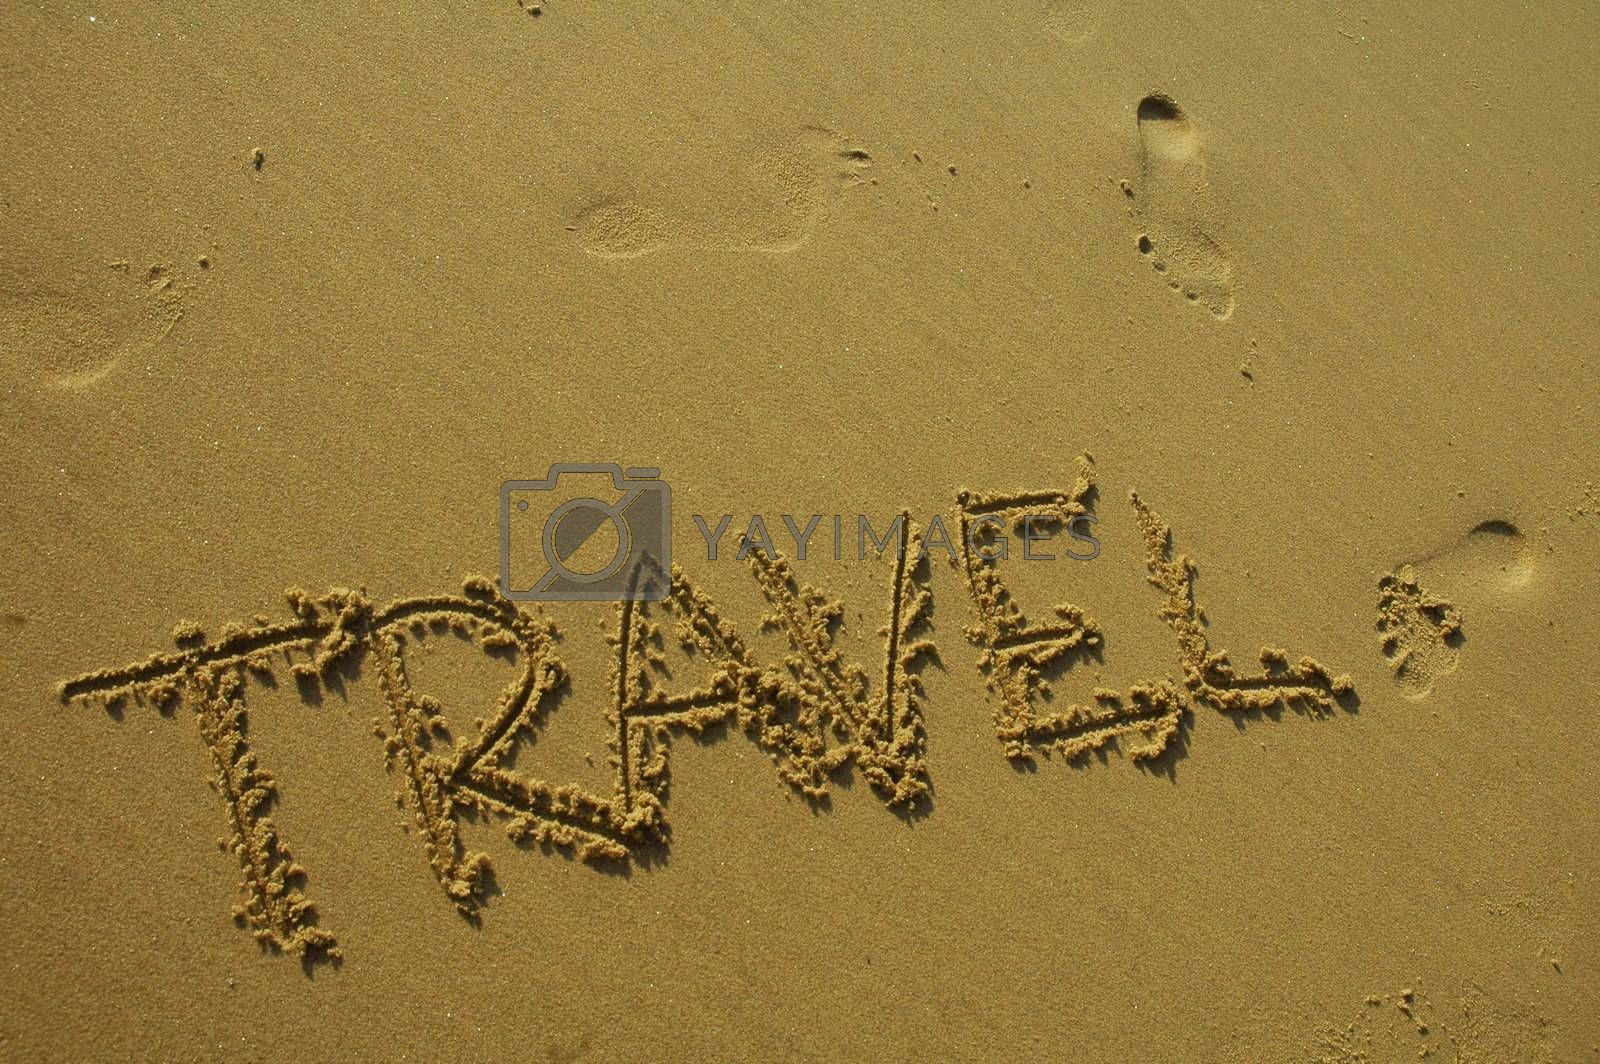 travel written in the sand on a beach